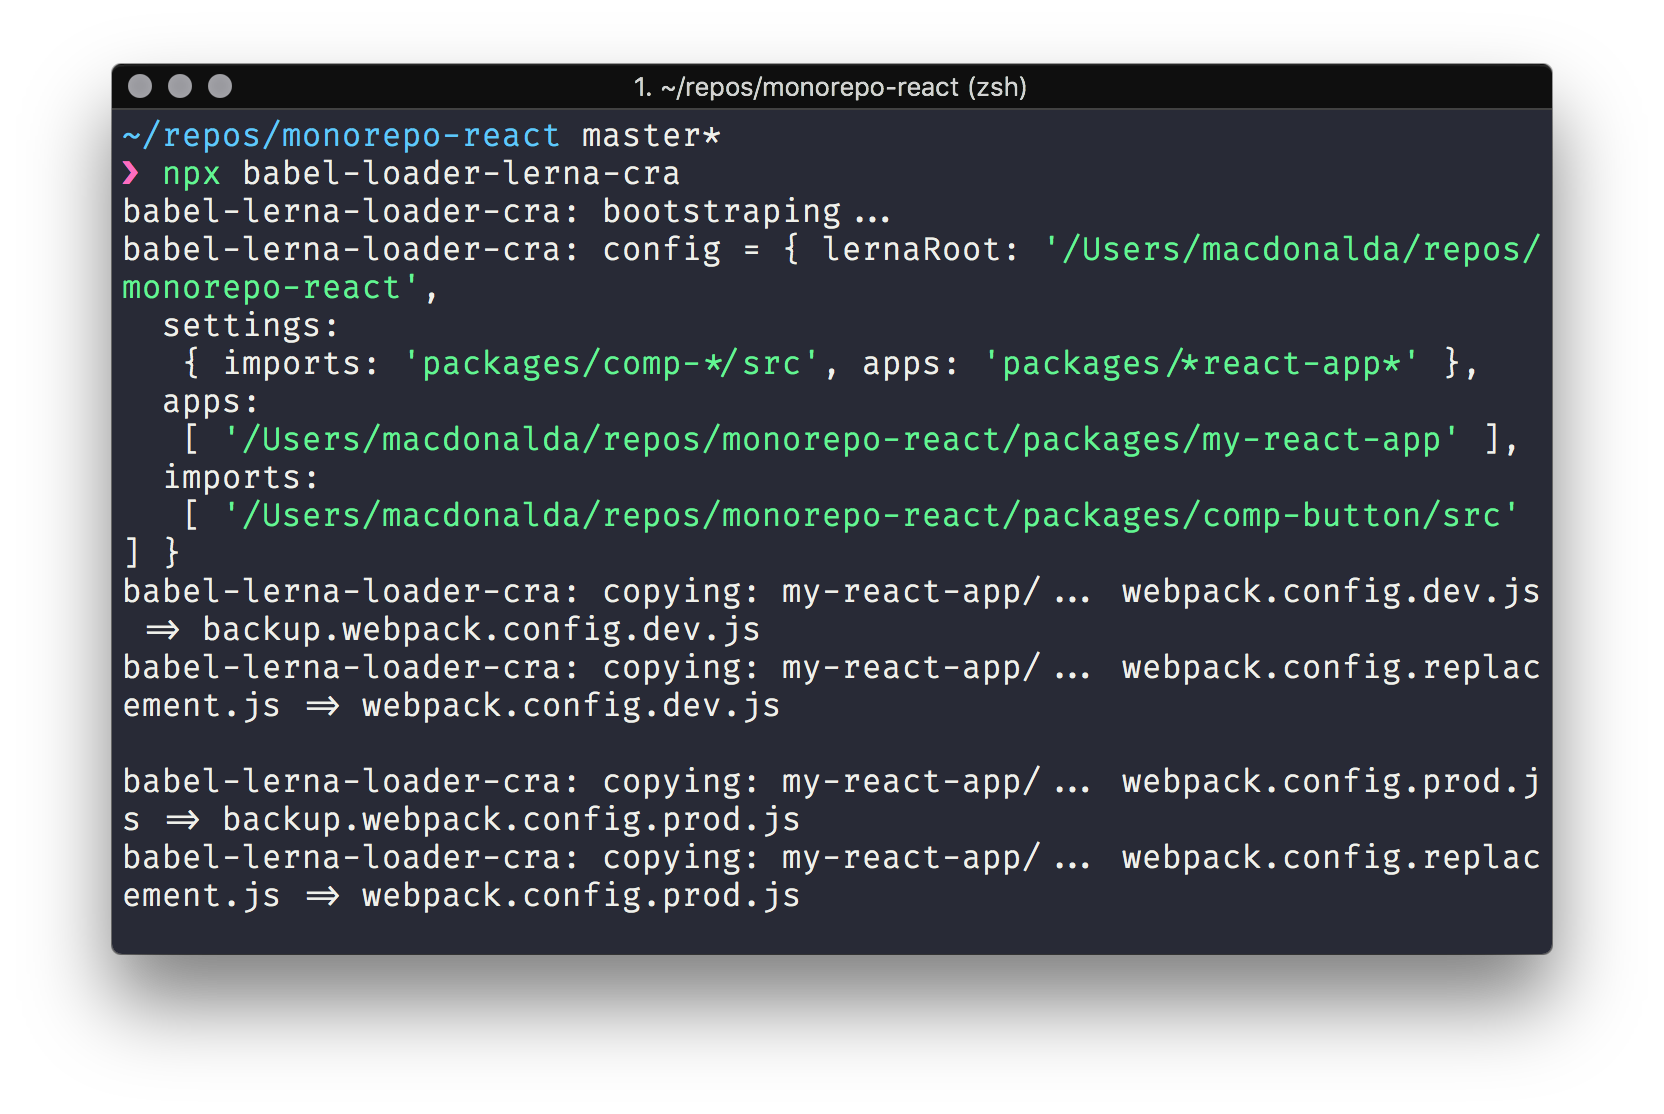 Screenshot of babel-loader-lerna-cra bootstrapping Create-React-App's Webpack config in the CLI